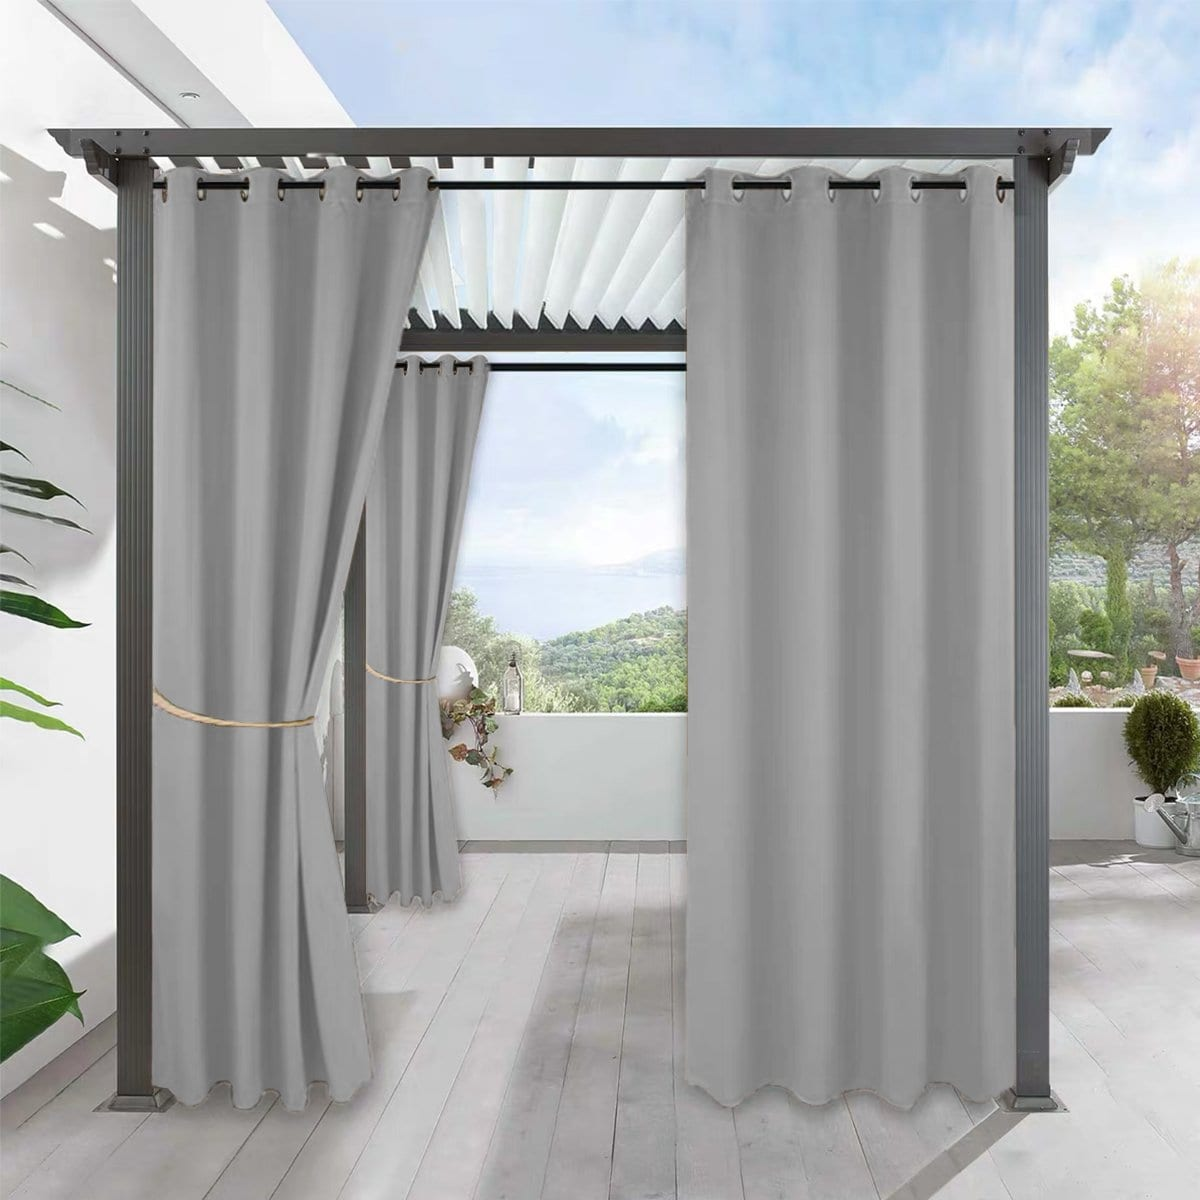 How to choose suitable outdoor curtains waterproof?